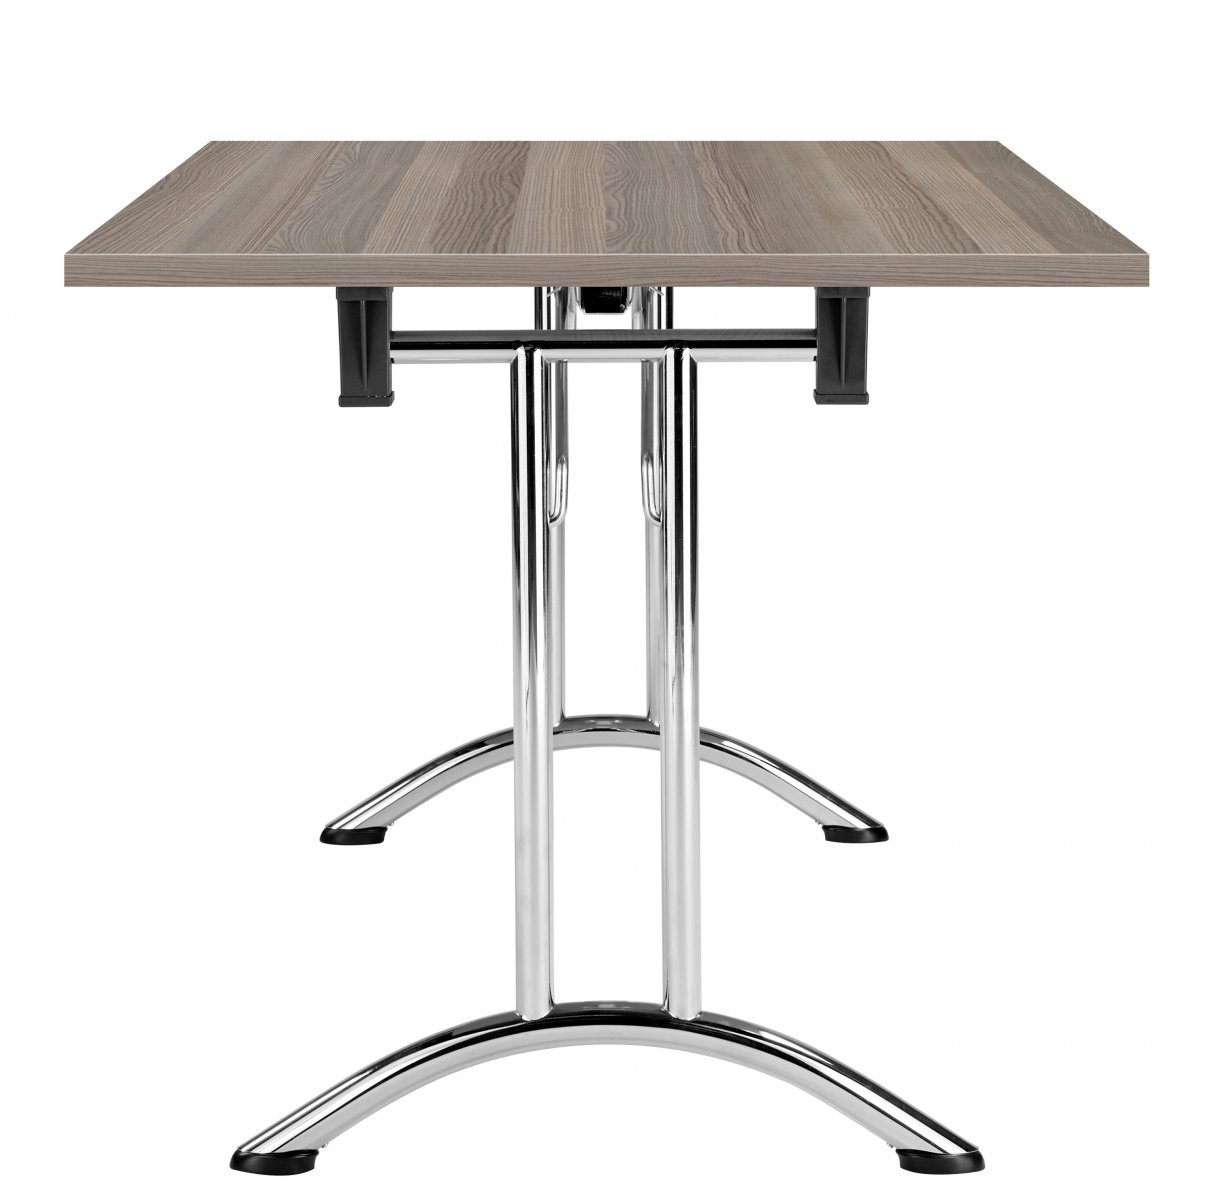 Union Rectangular 140 x 80 Folding Meeting Table - Grey Oak with Chrome Frame